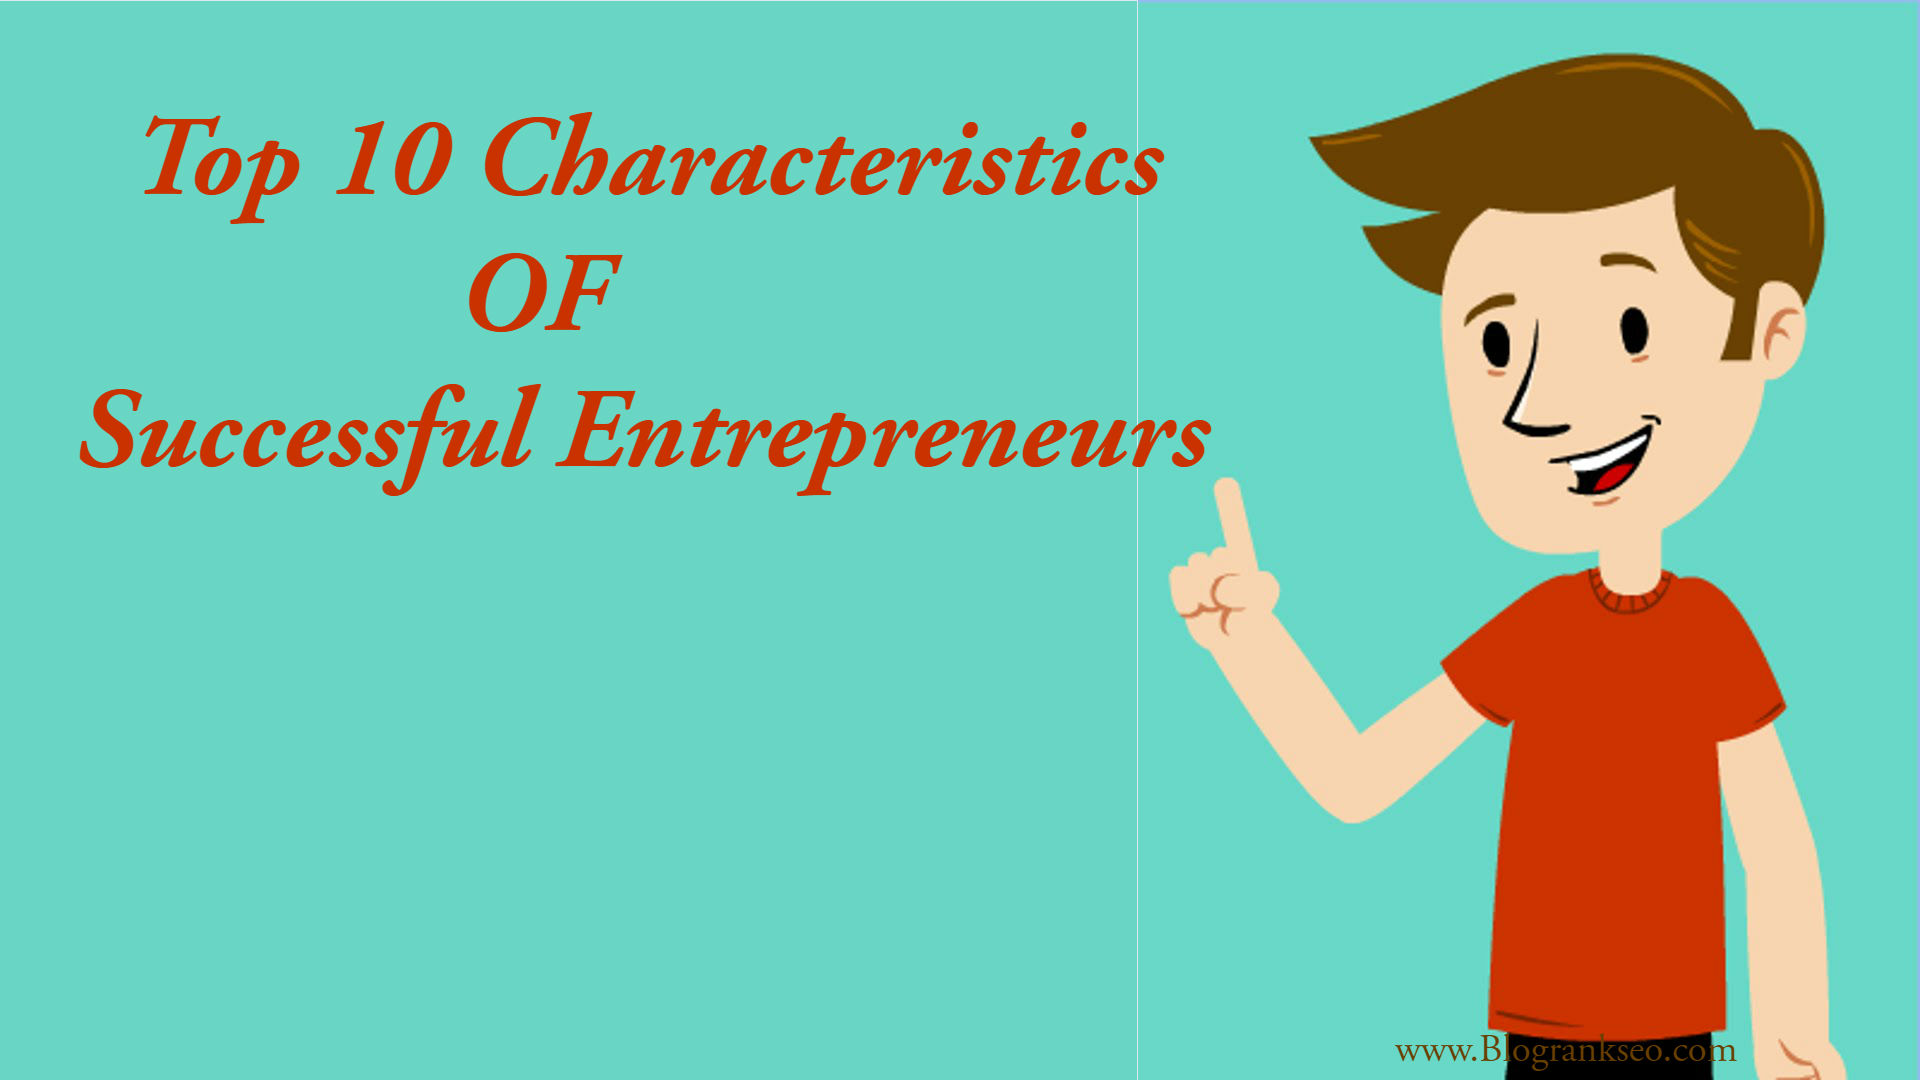 an overview of the characteristics of an successful entrepreneur The 5 personality traits of successful entrepreneurs by elizabeth peterson, business news daily contributor may 8, 2014 10:21 am est more five personality traits that point to entrepreneurial success / credit: entrepreneur success image via shutterstock.